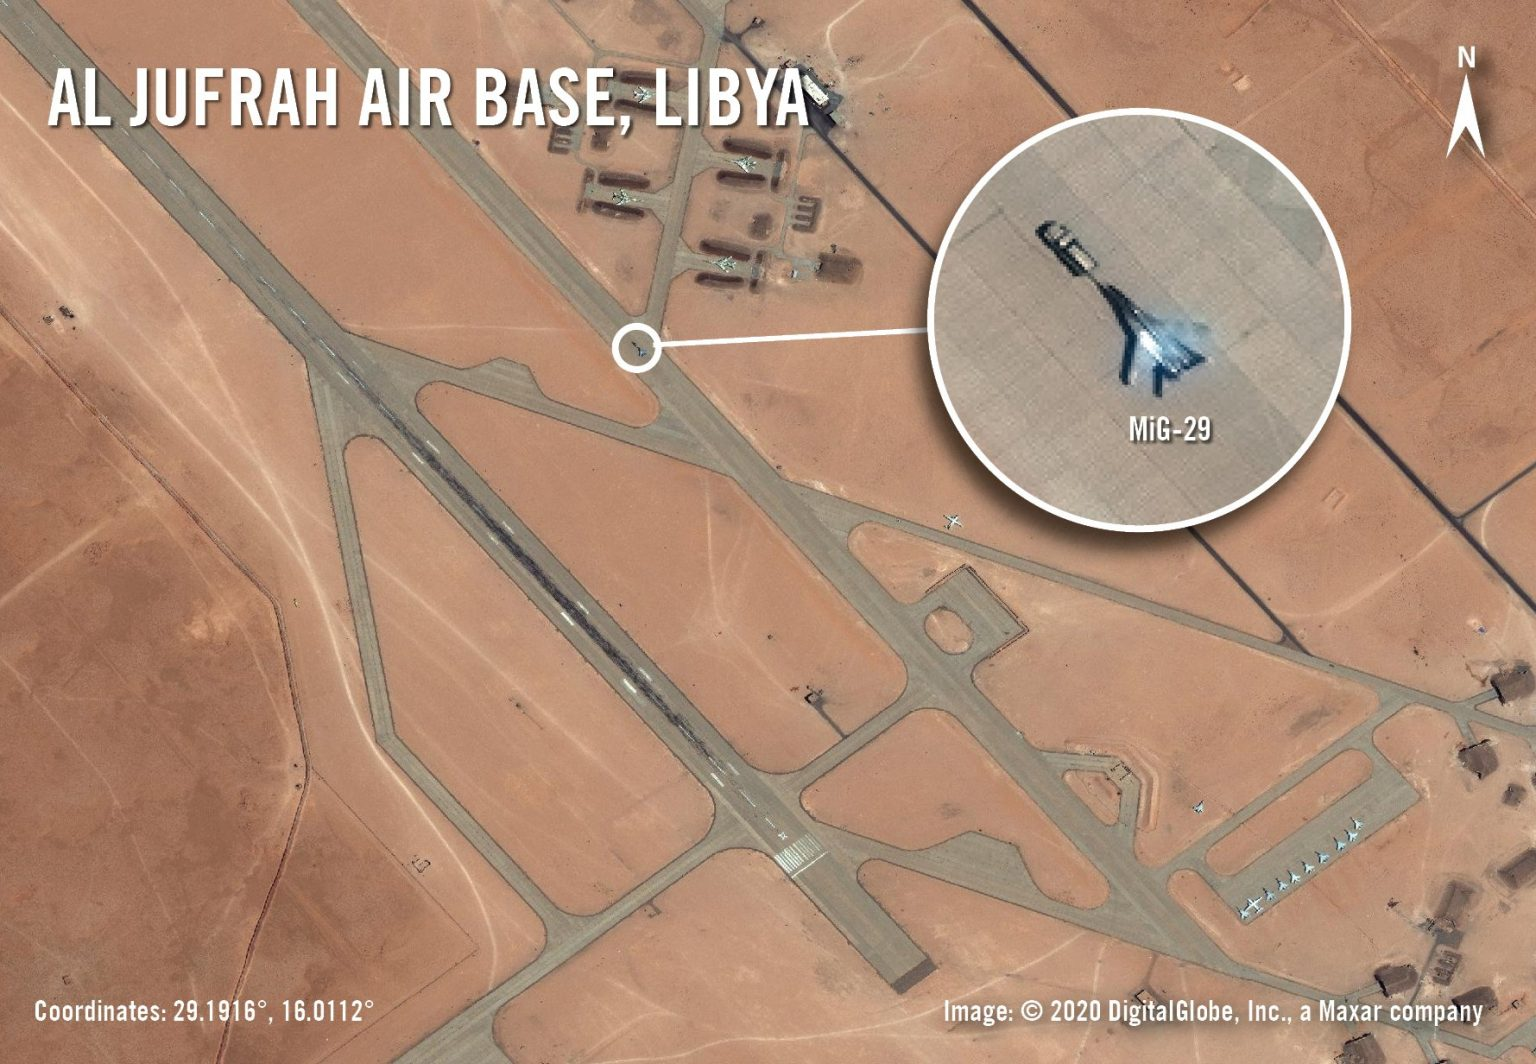 Satellite Imagery Has Spotted Mysterious MiG-29 Fighter Jet At Libyan Air Base